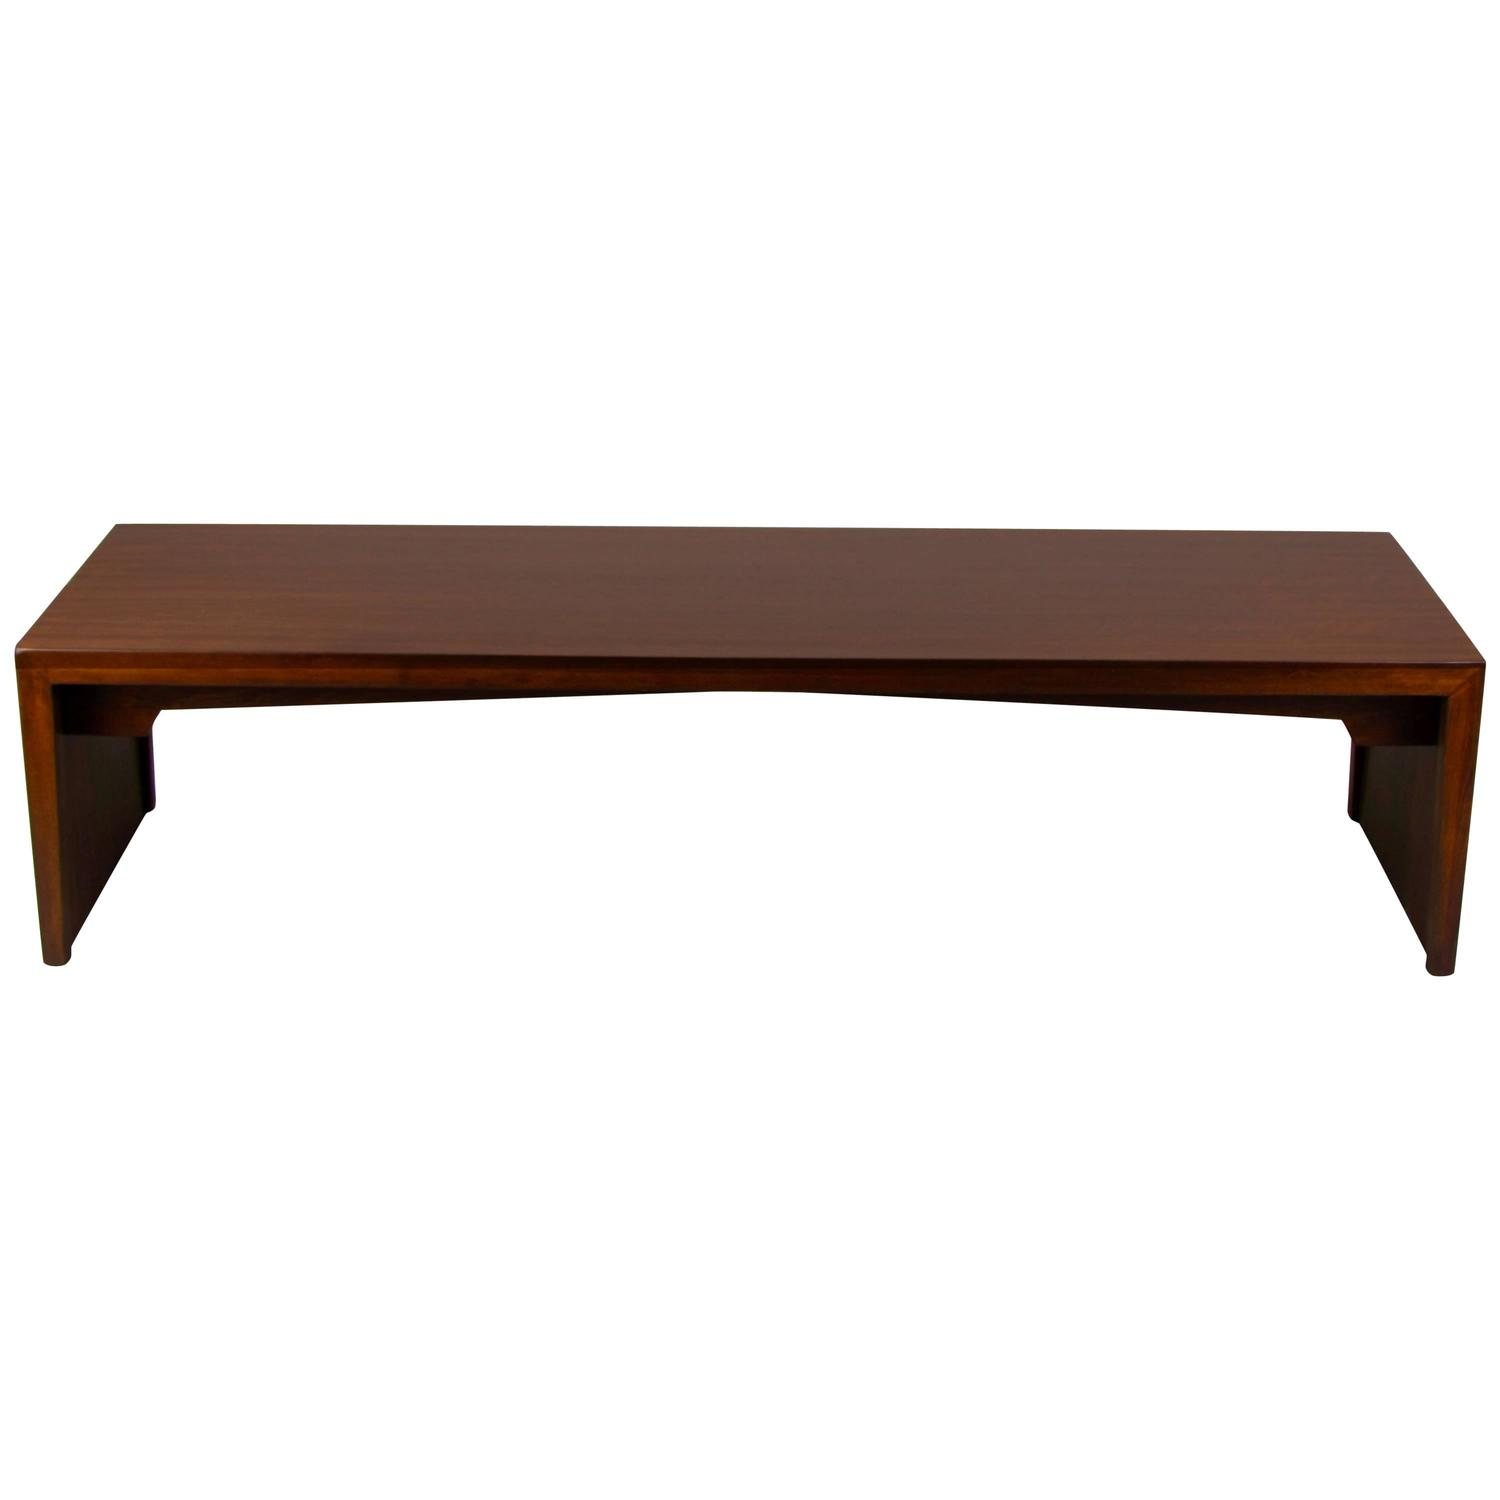 Handsome Mahogany Bench or Coffee Table by Milo Baughman for